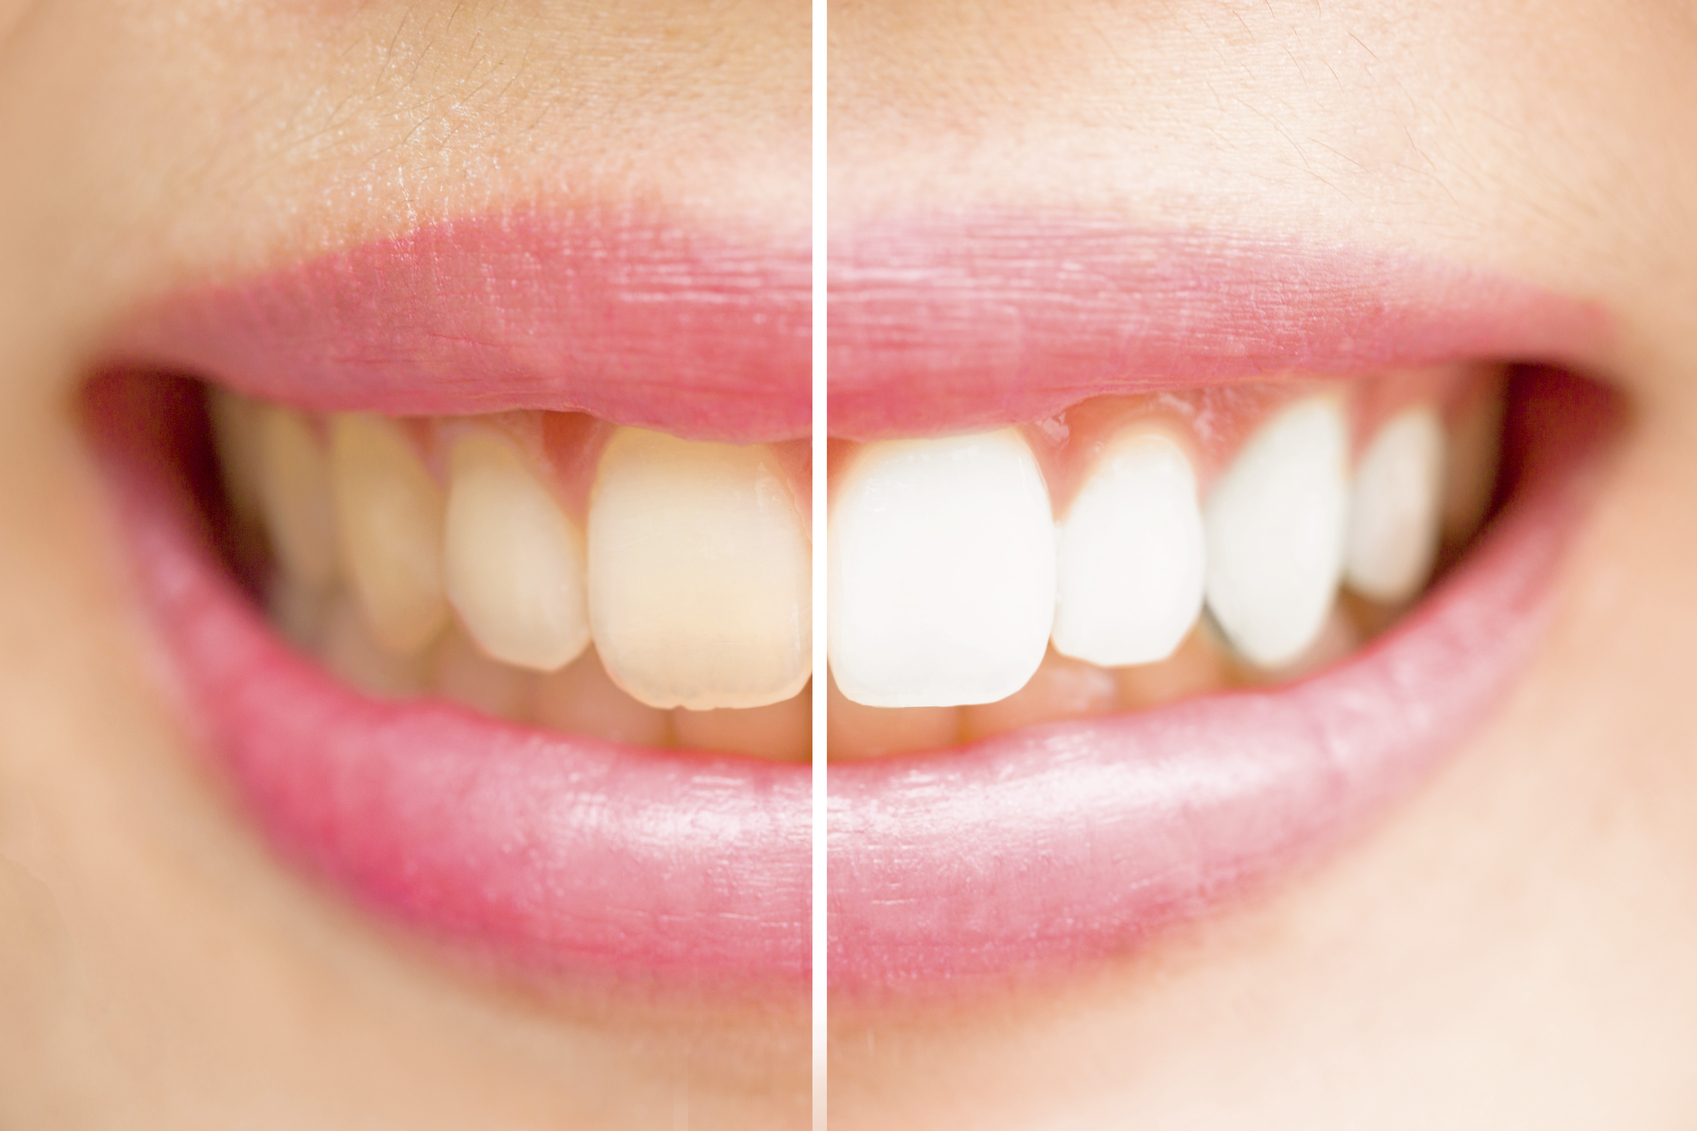 Learn more about teeth whitening in Midwest City.